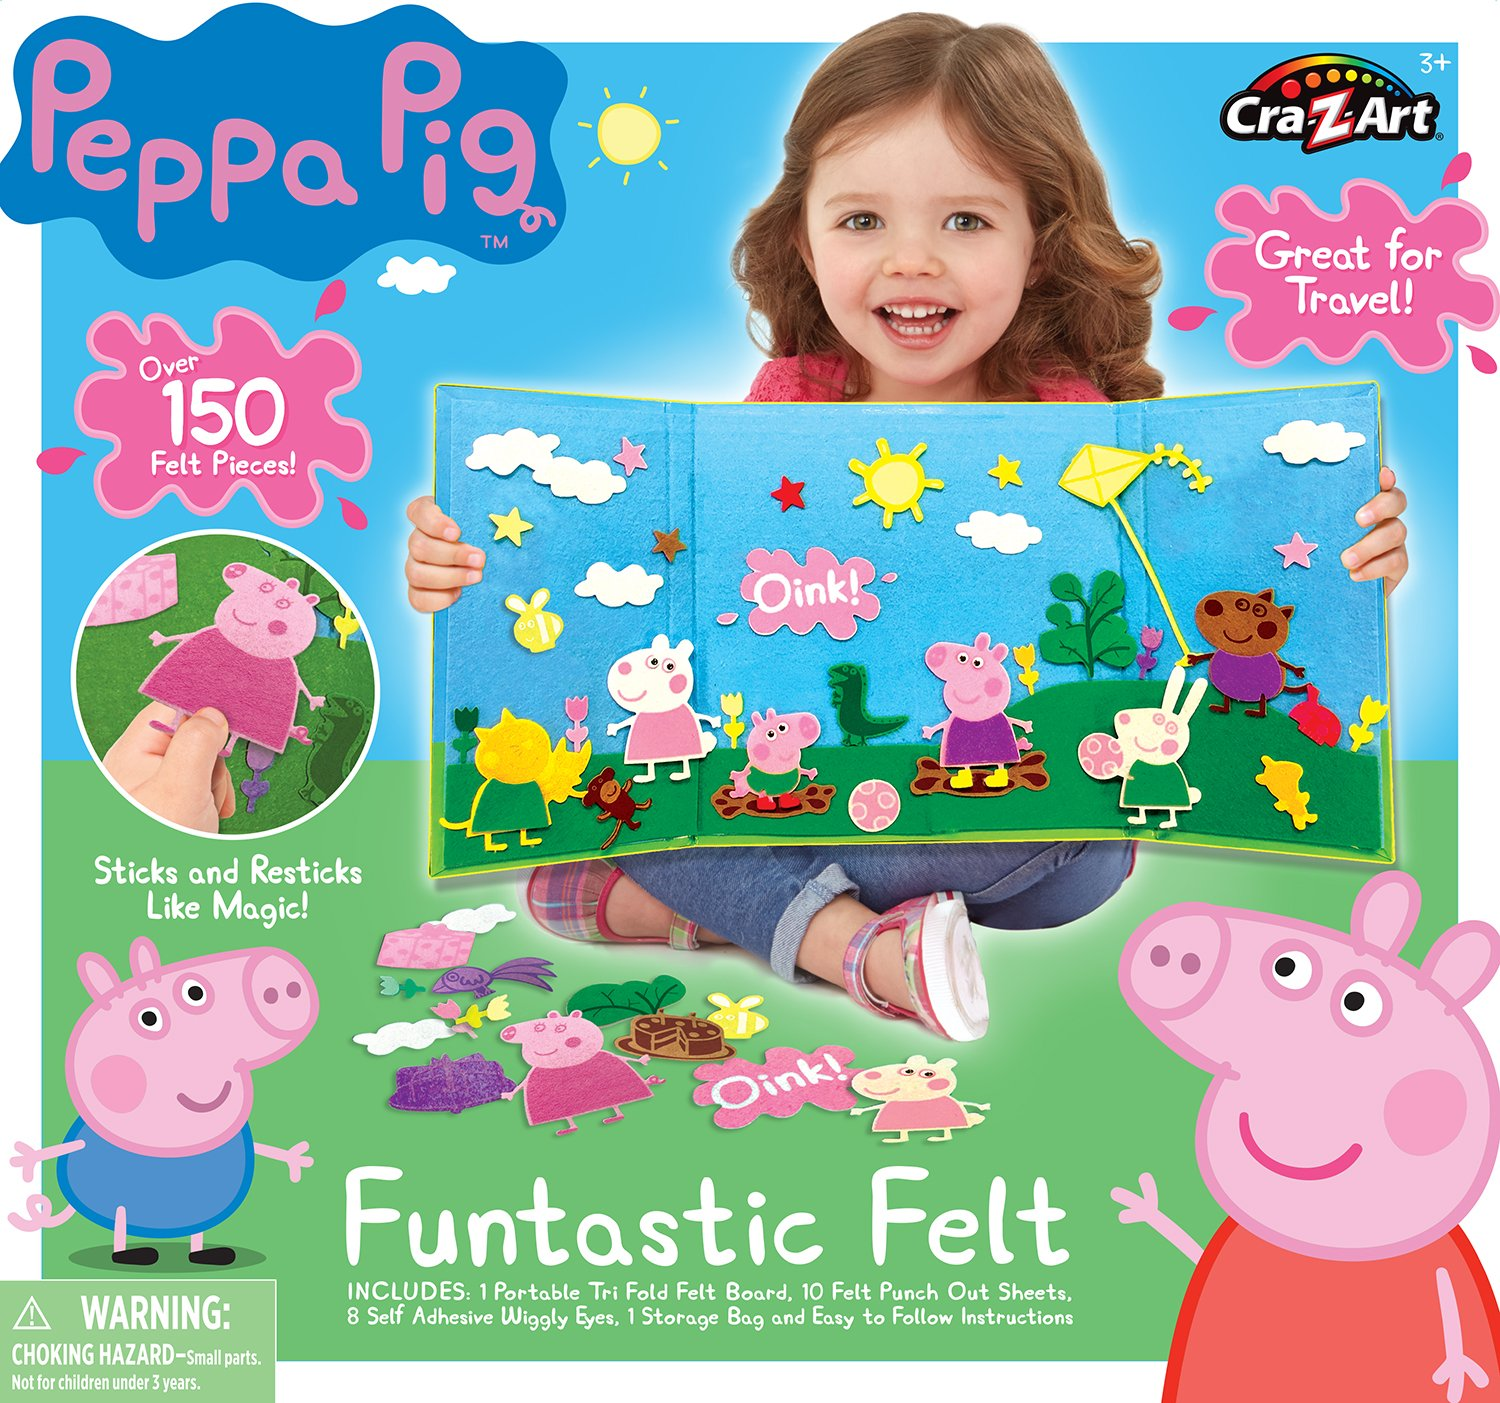 Cra-Z-Art Peppa Pig Feltastic Activity Kit Playset